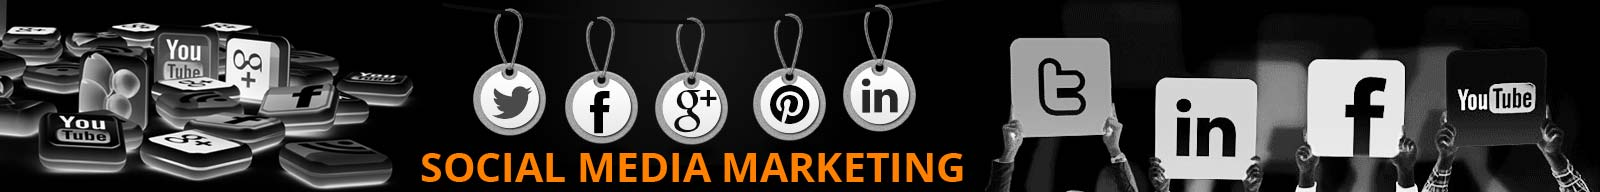 Social Media Marketing (SMM) Services : iMz Media Solutions